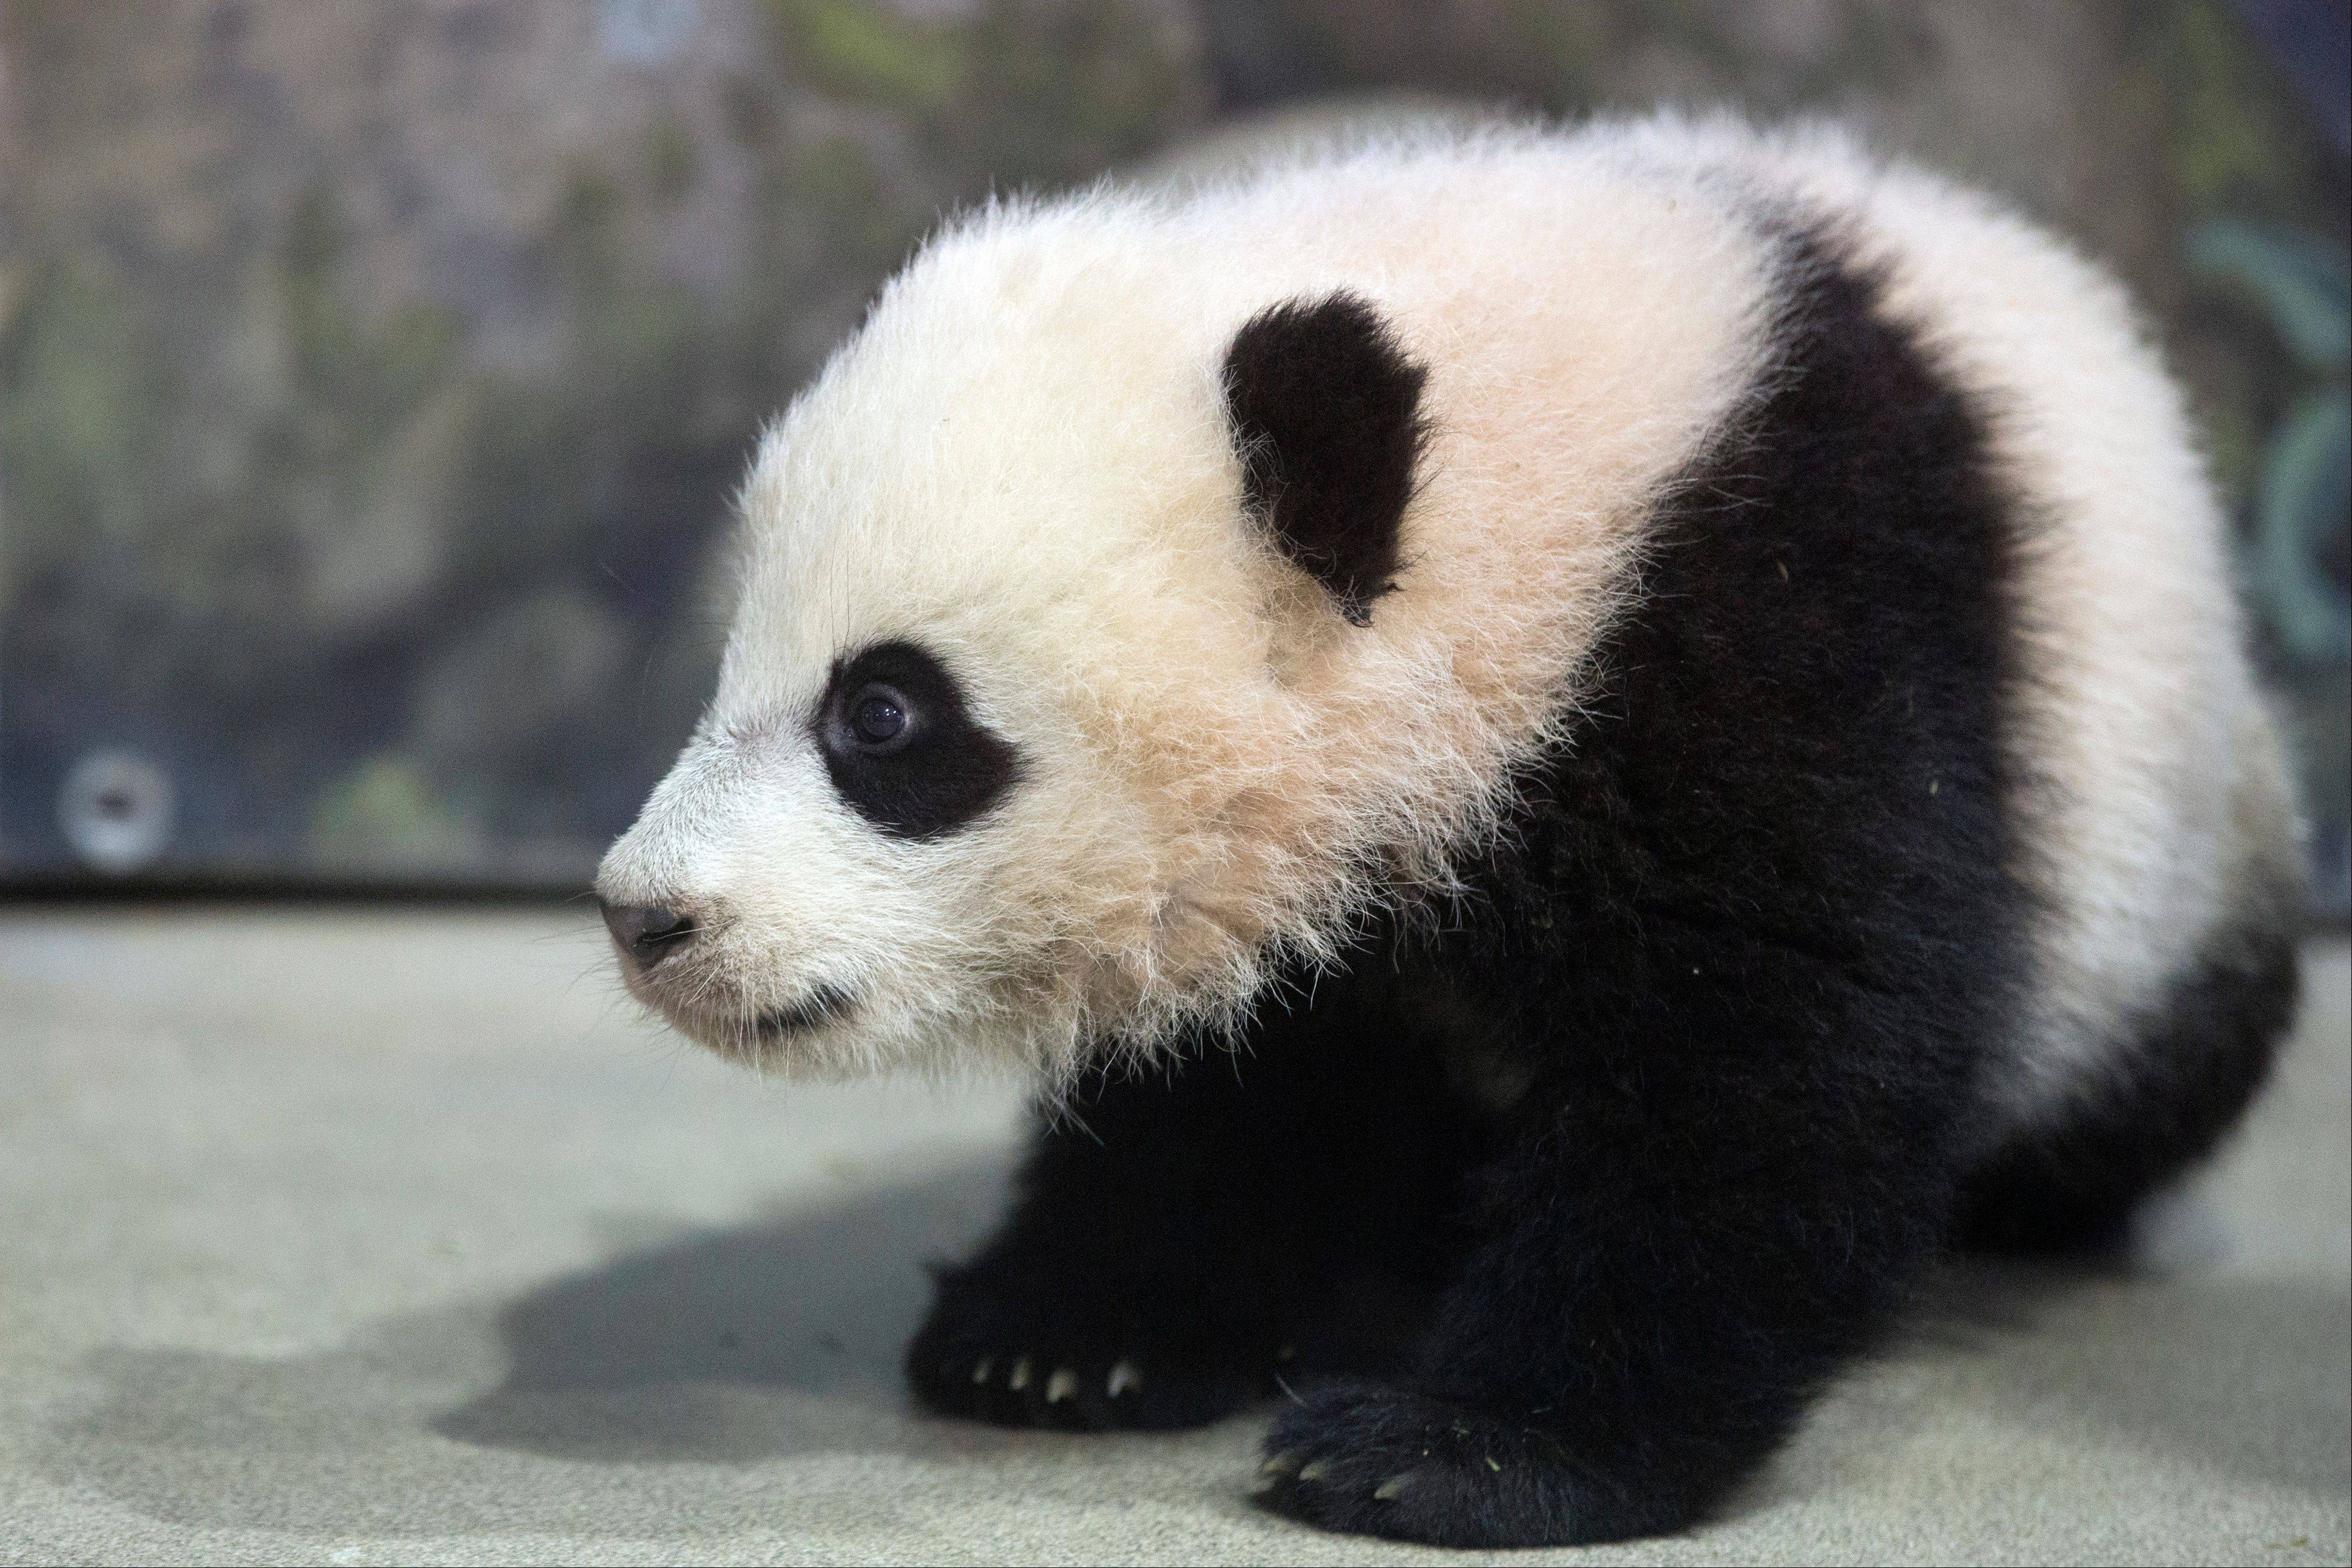 Bao Bao, the four and a half month old giant panda cub, sits in her indoor habitat at the Smithsonian's National Zoo in Washington. Saturday was the first chance for the public to see the 5-month-old cub.